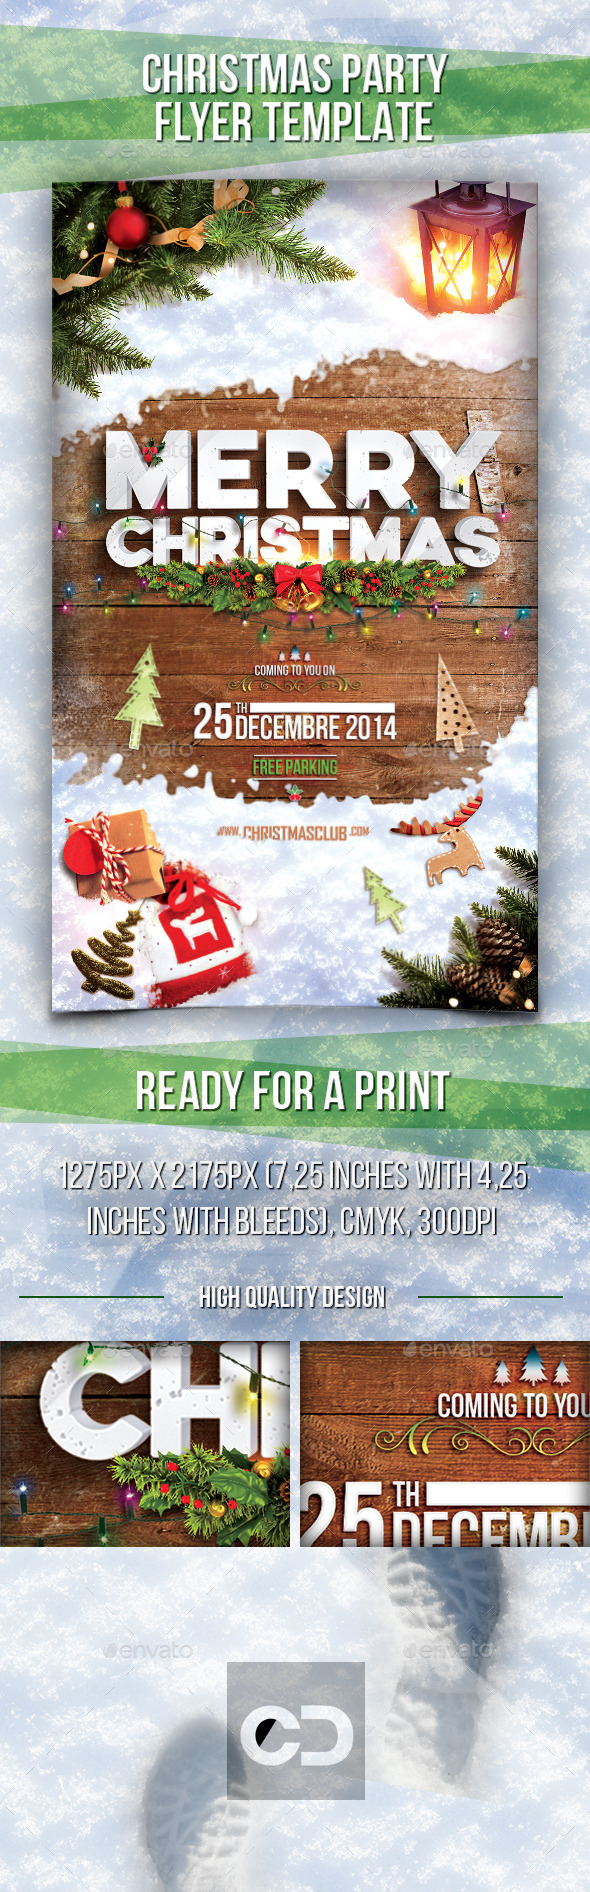 GraphicRiver Christmas Party Flyer 9514266